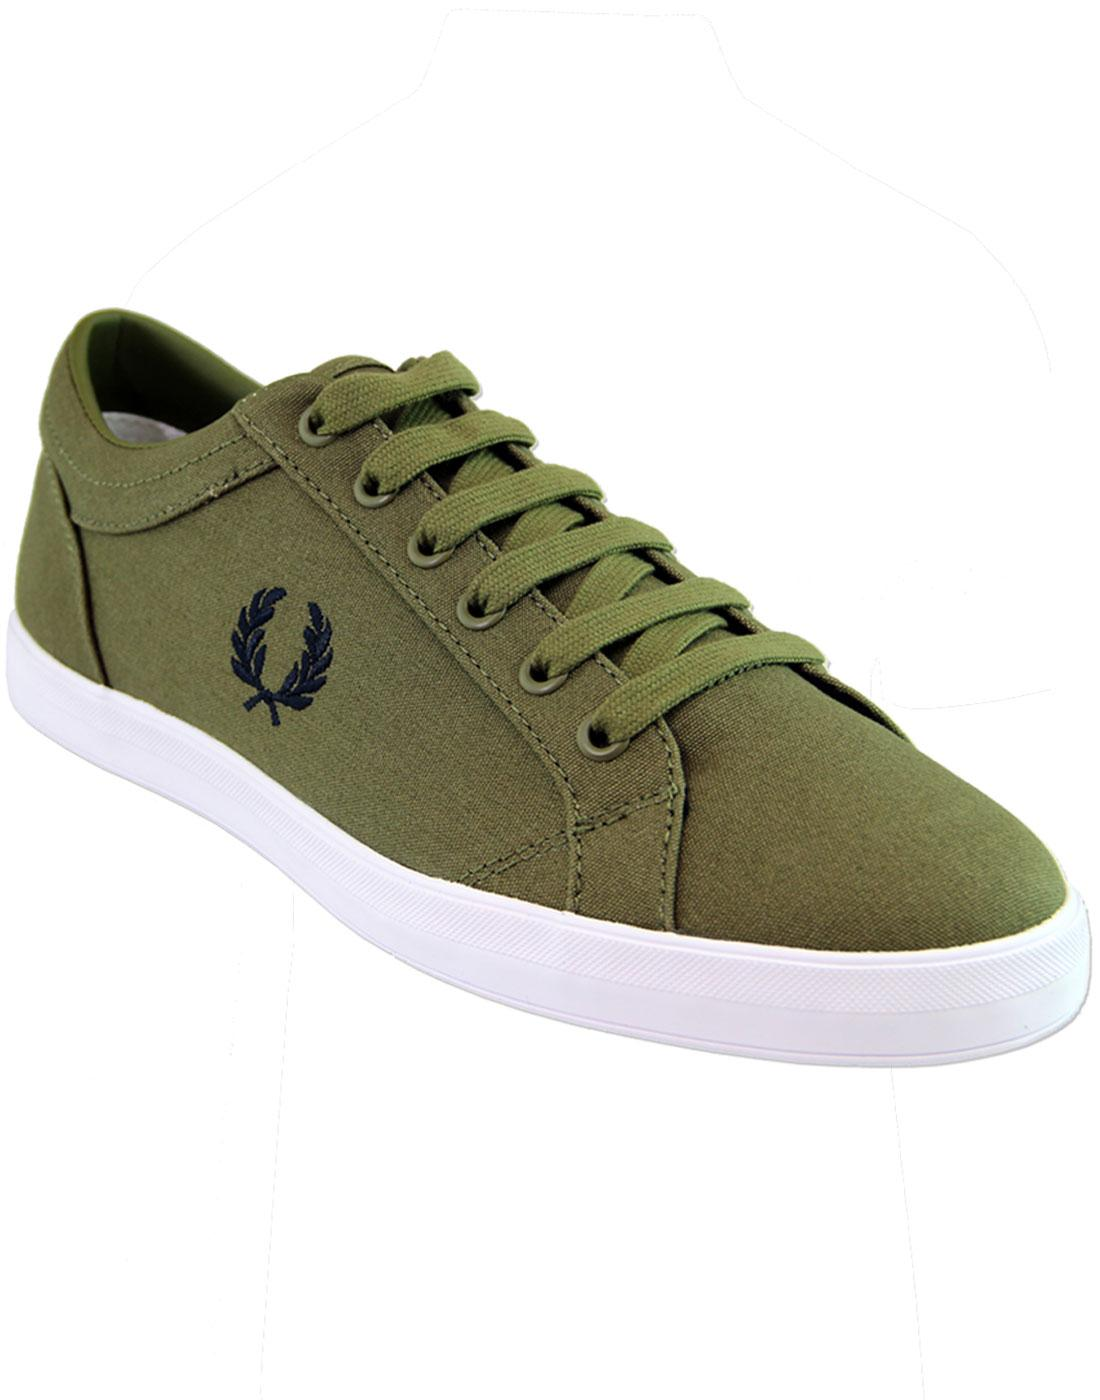 B3114 FRED PERRY BASELINE CANVAS TRAINERS - Olive